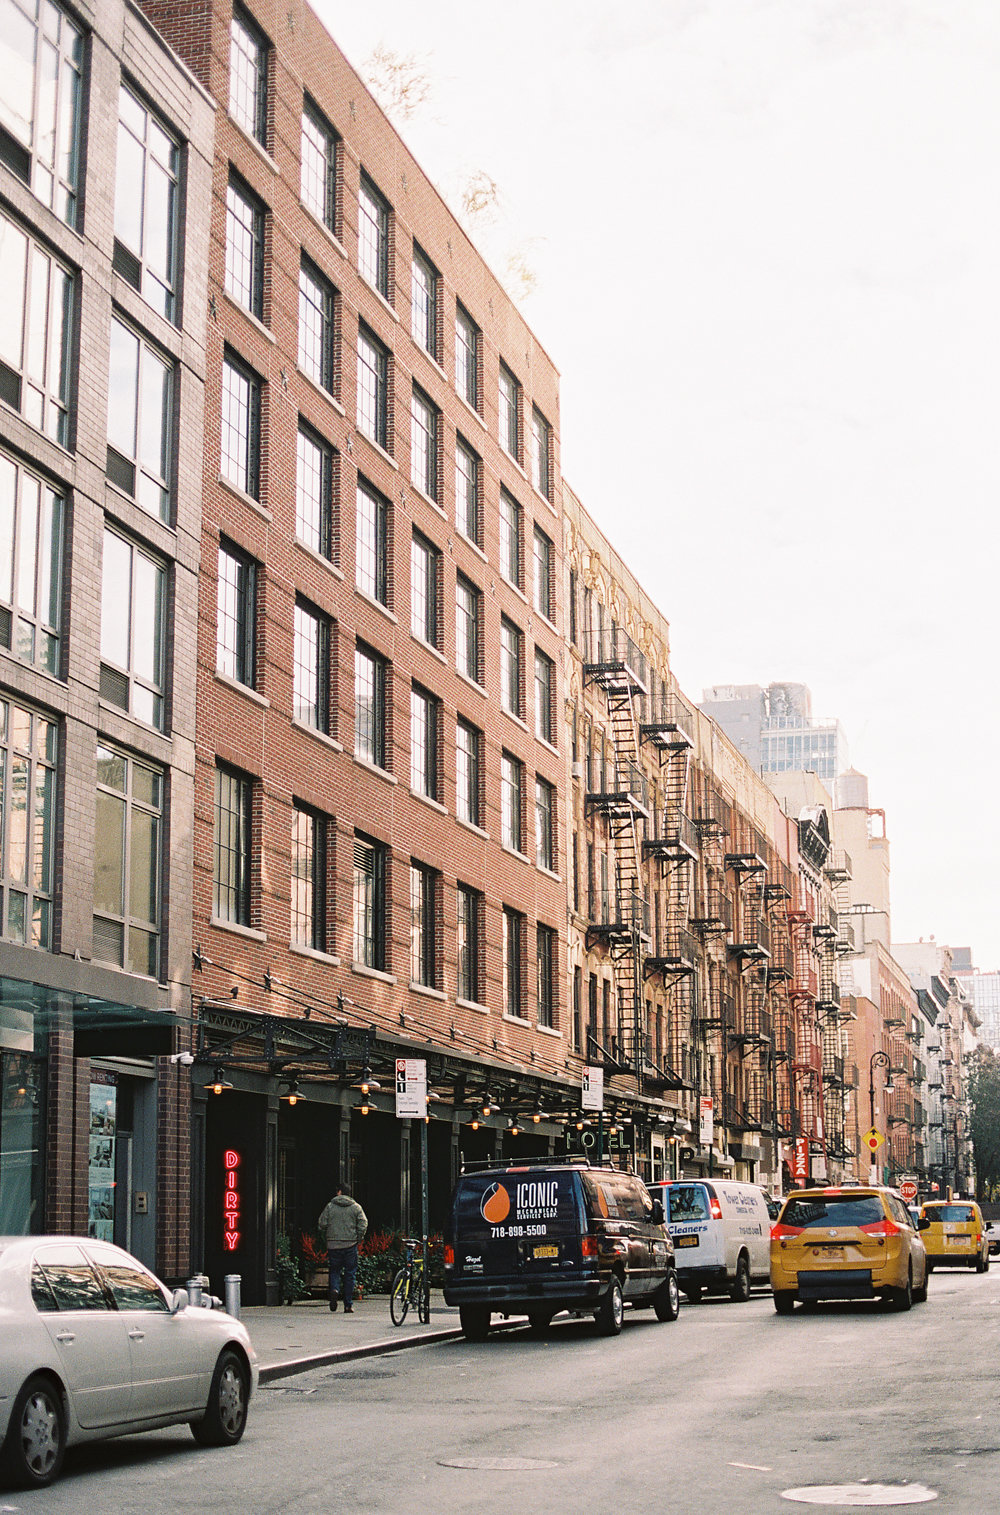 New York City Architecture as seen on Cottage Hill cottagehill.co40.jpg